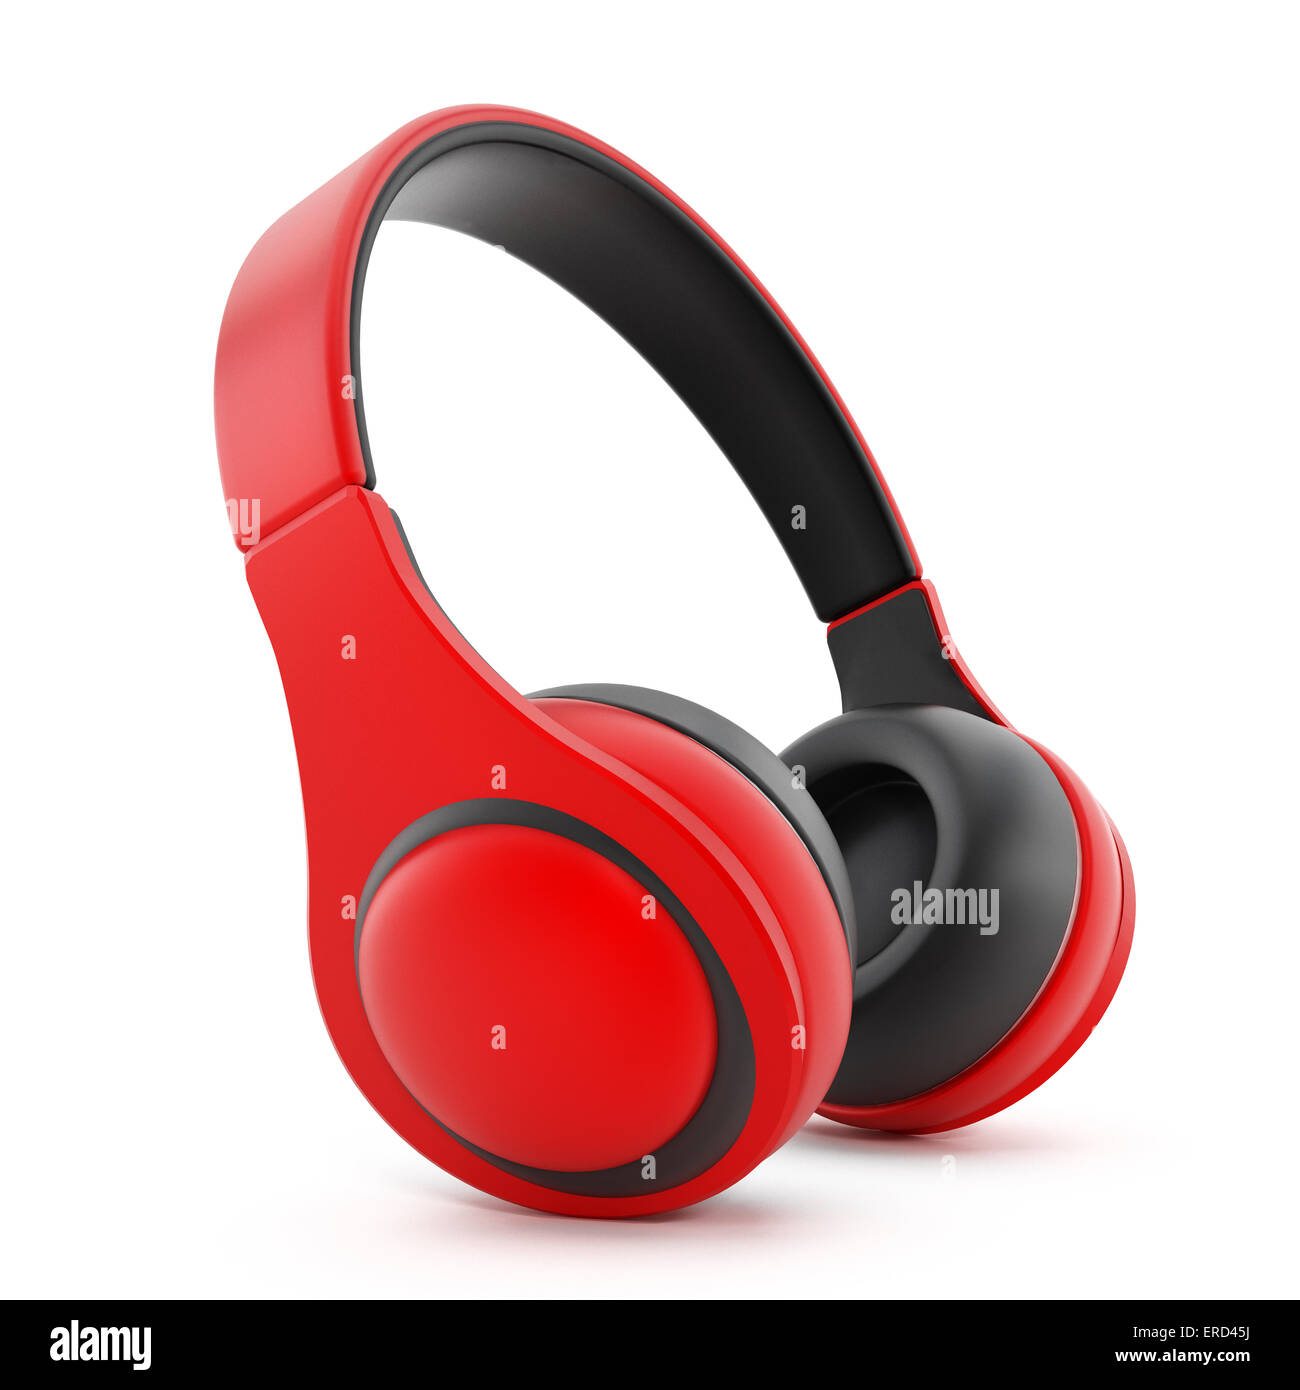 Red headphones isolated on white. - Stock Image